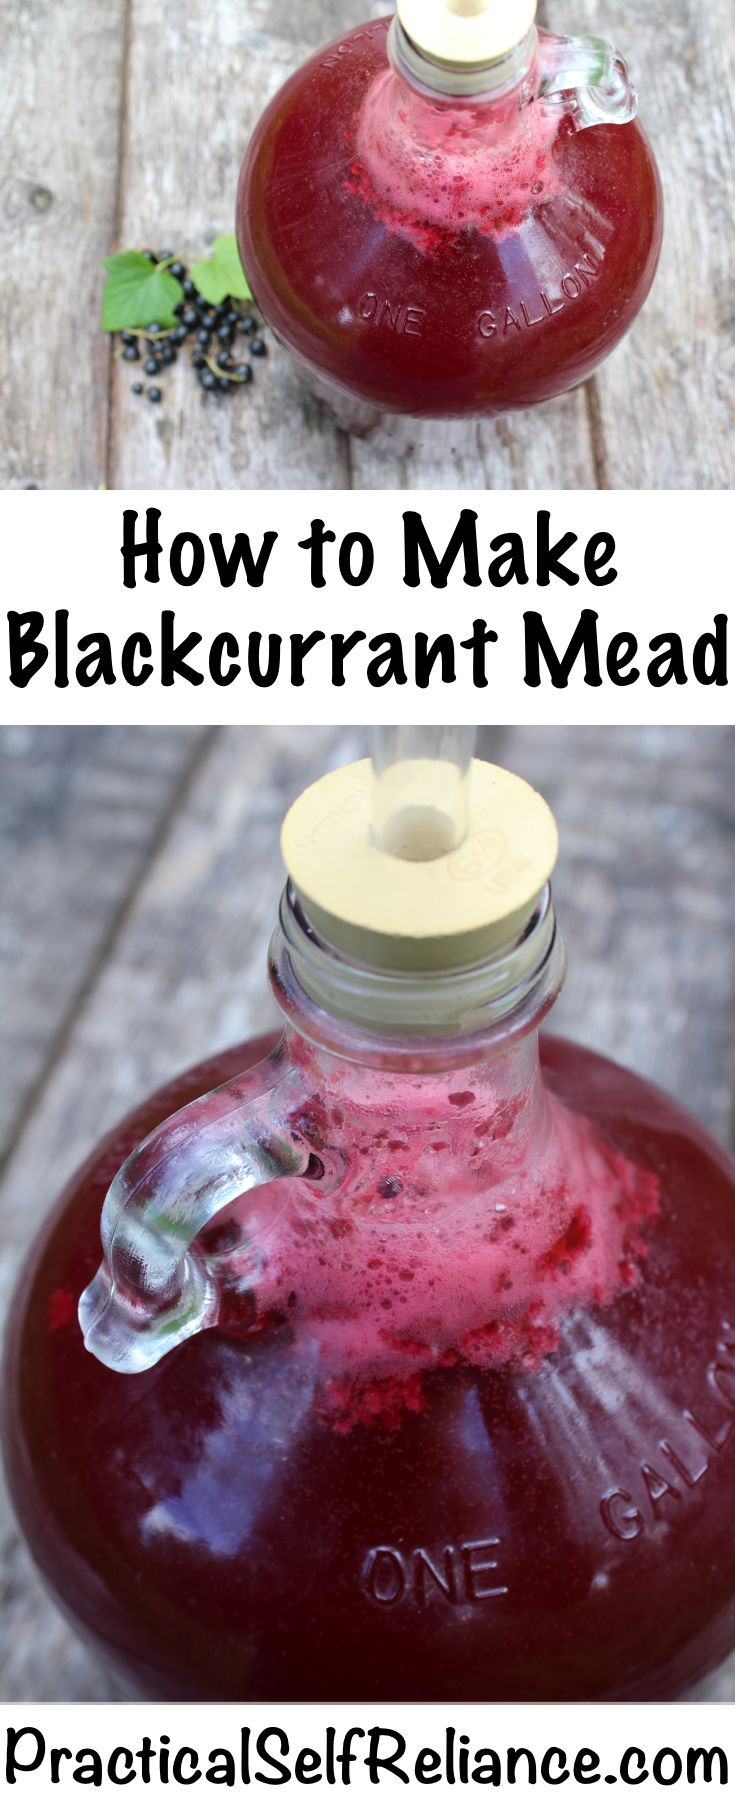 How to Make Blackcurrant Mead